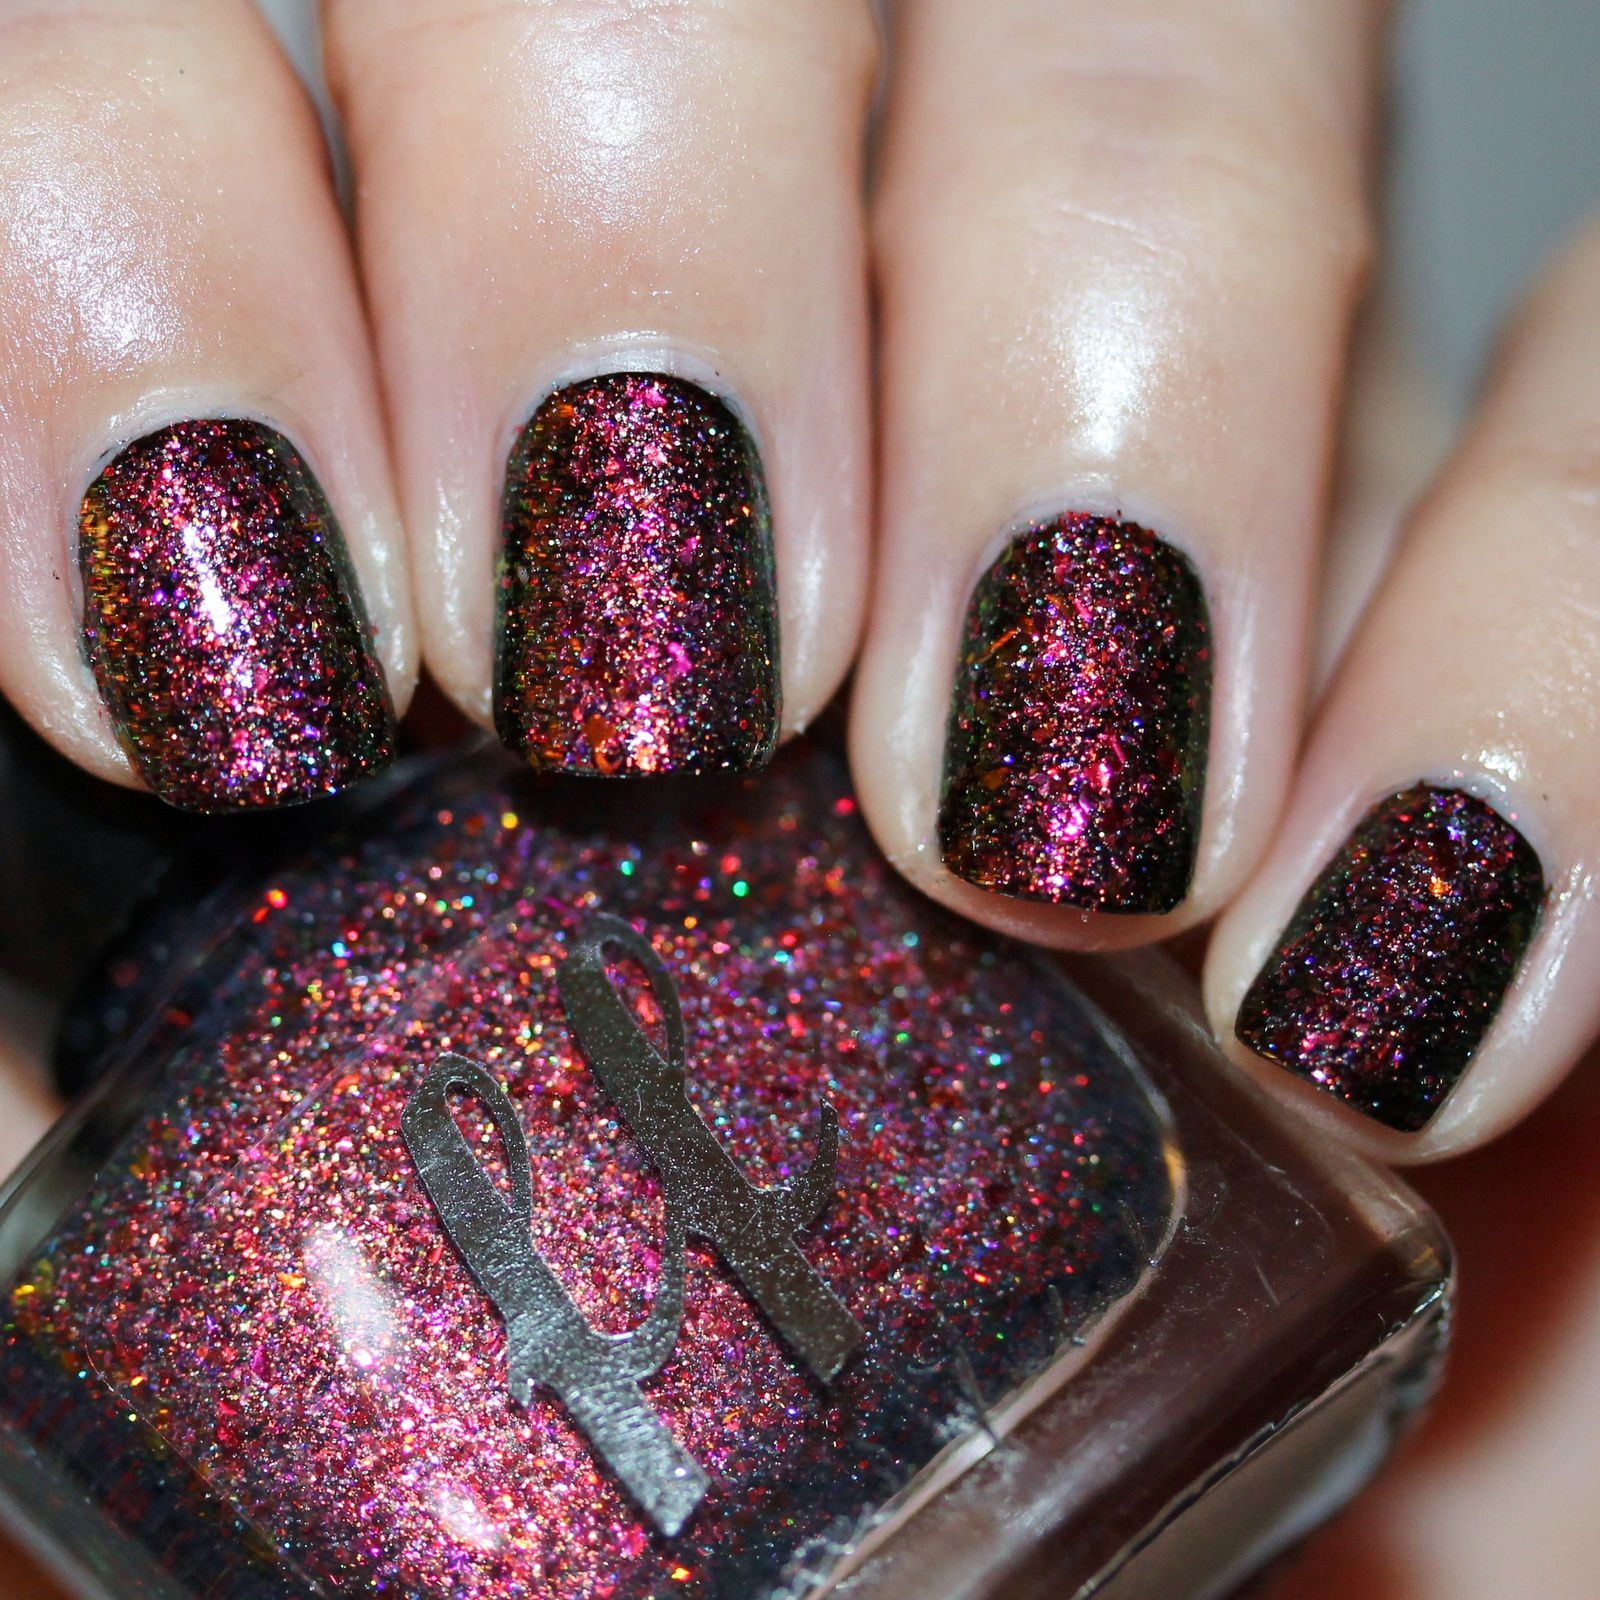 Femme Fatale Cosmetics Fire Lily (4 coats on its own, or 2 coats over a black base, no top coat)